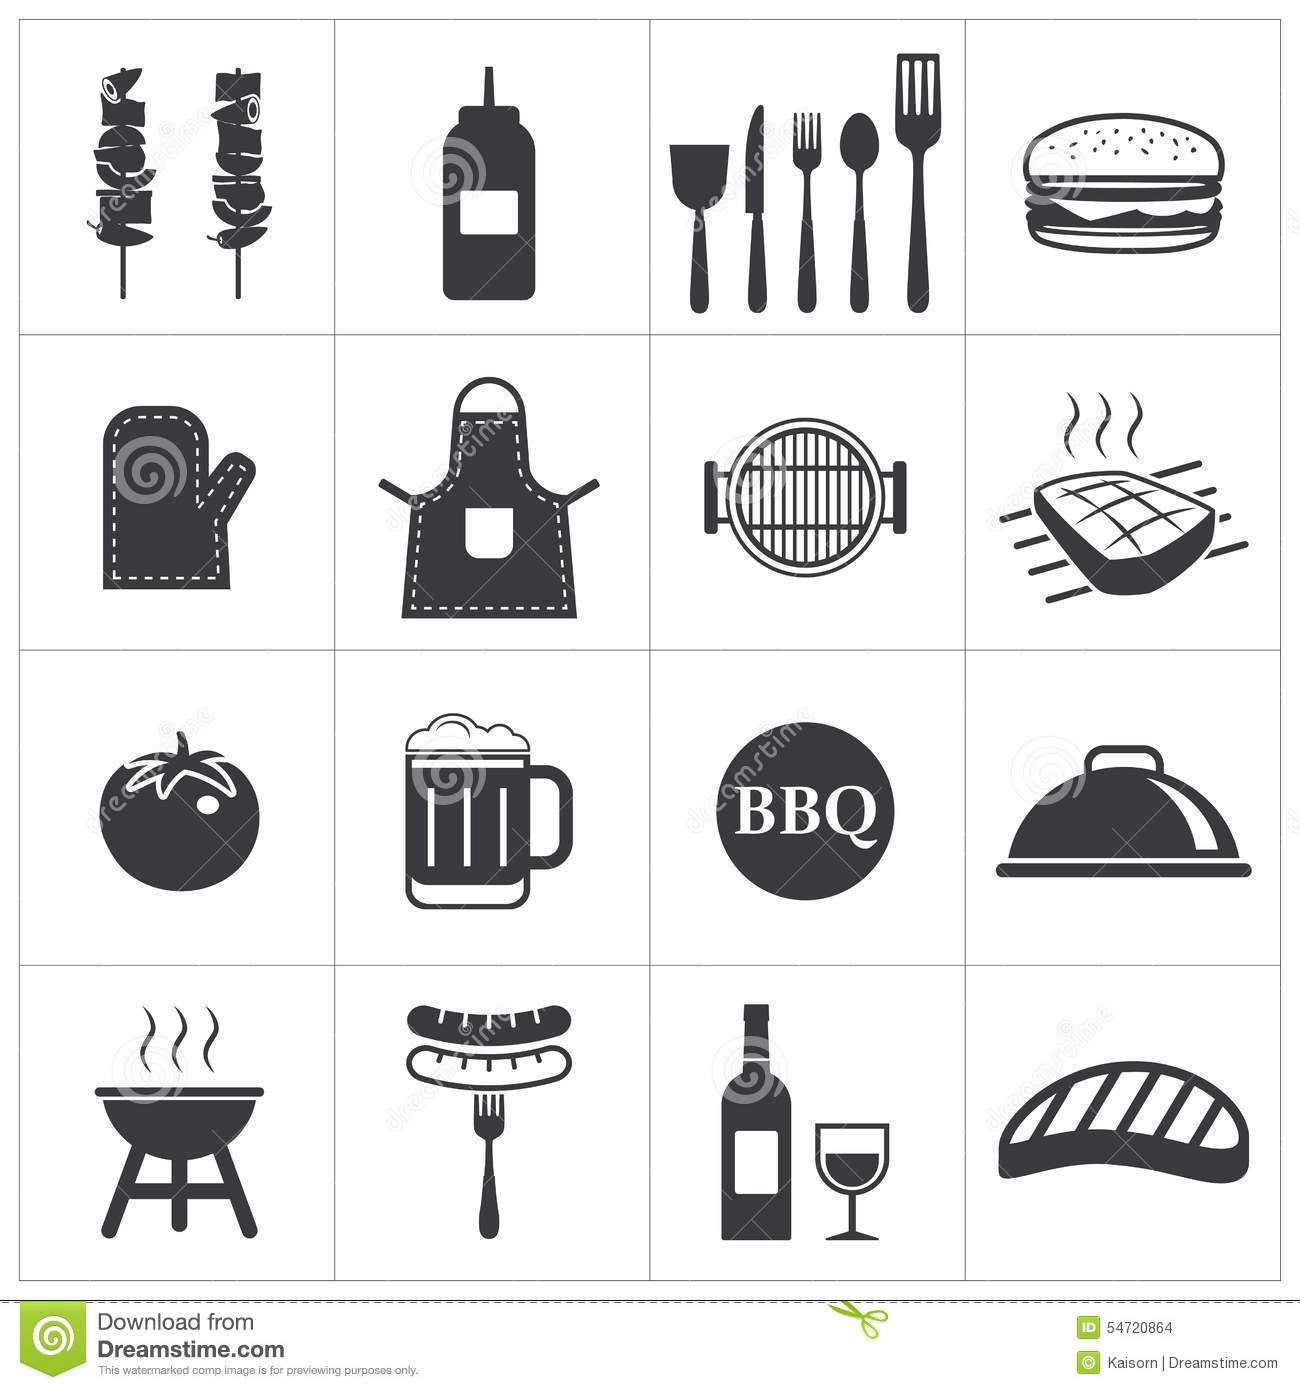 Grill Icon Barbeque Symbol Stock Photos, Images, & Pictures - 772 ...